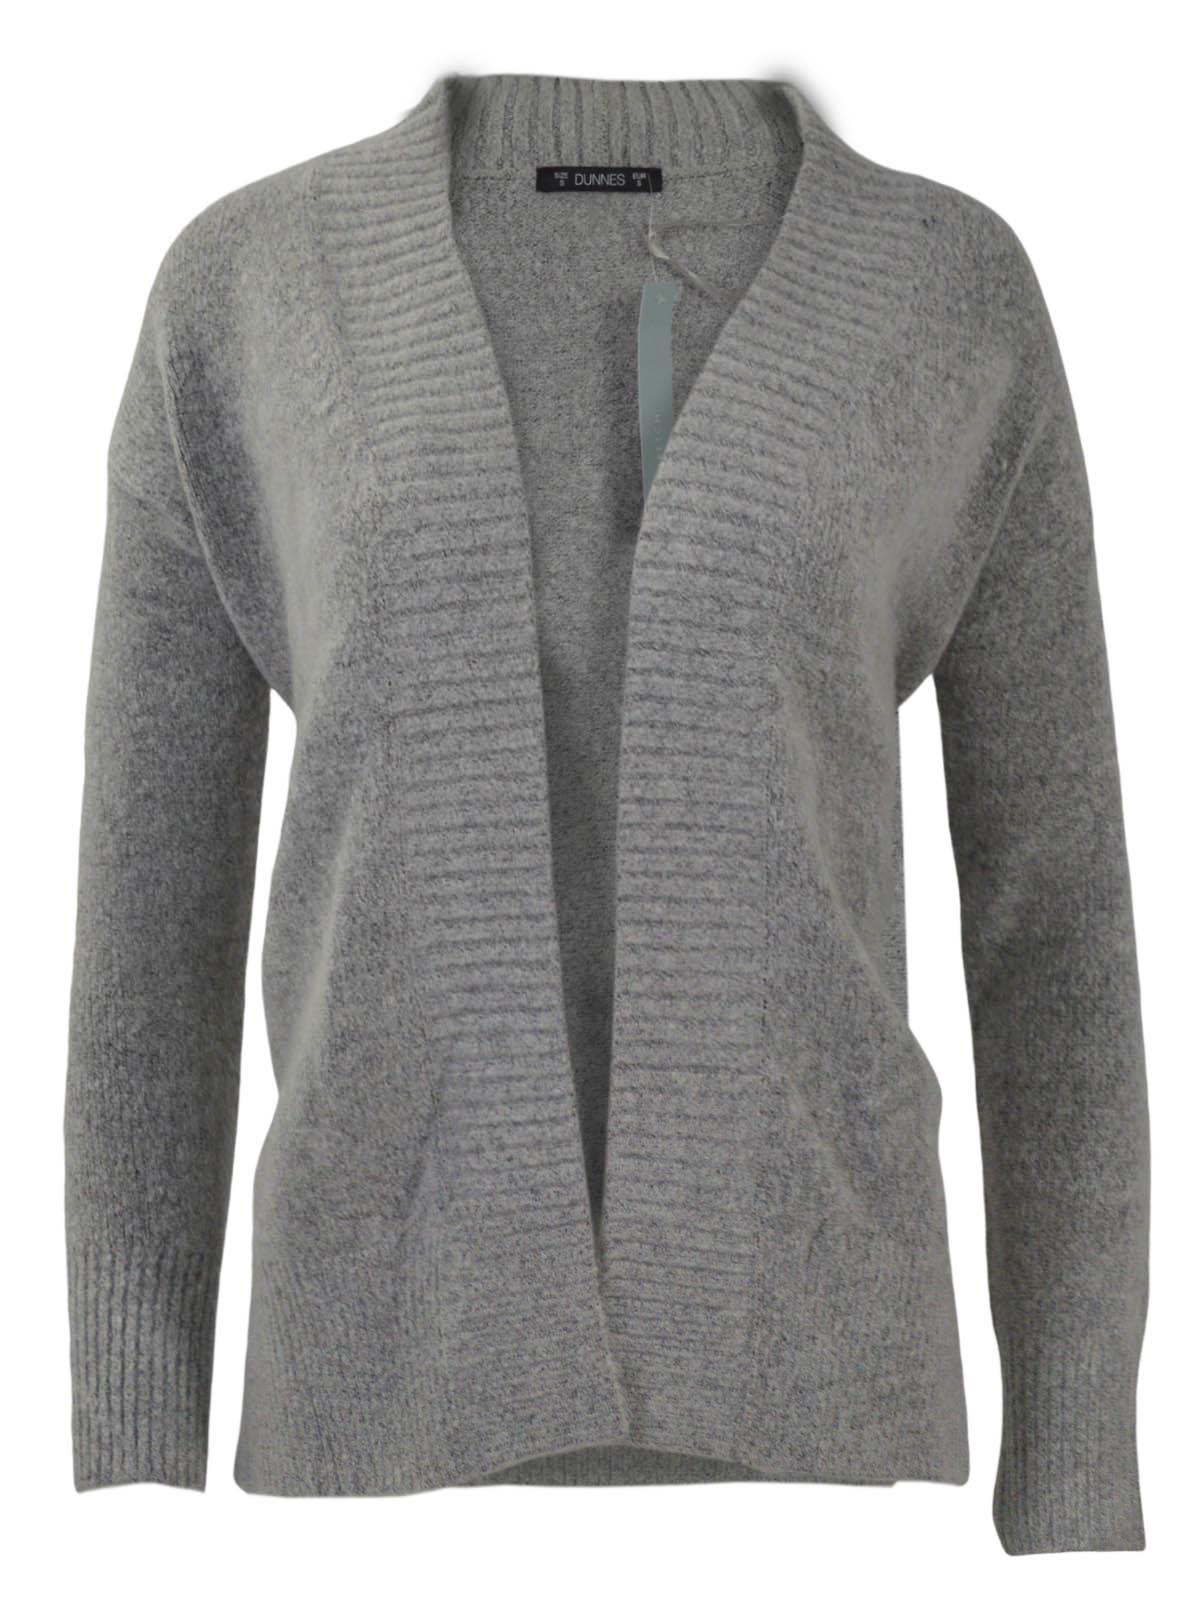 Womens-Open-Front-Cardigan-Ribbed-Edges-Chunky-Knit-Side-Splits-Burgundy-Grey thumbnail 10